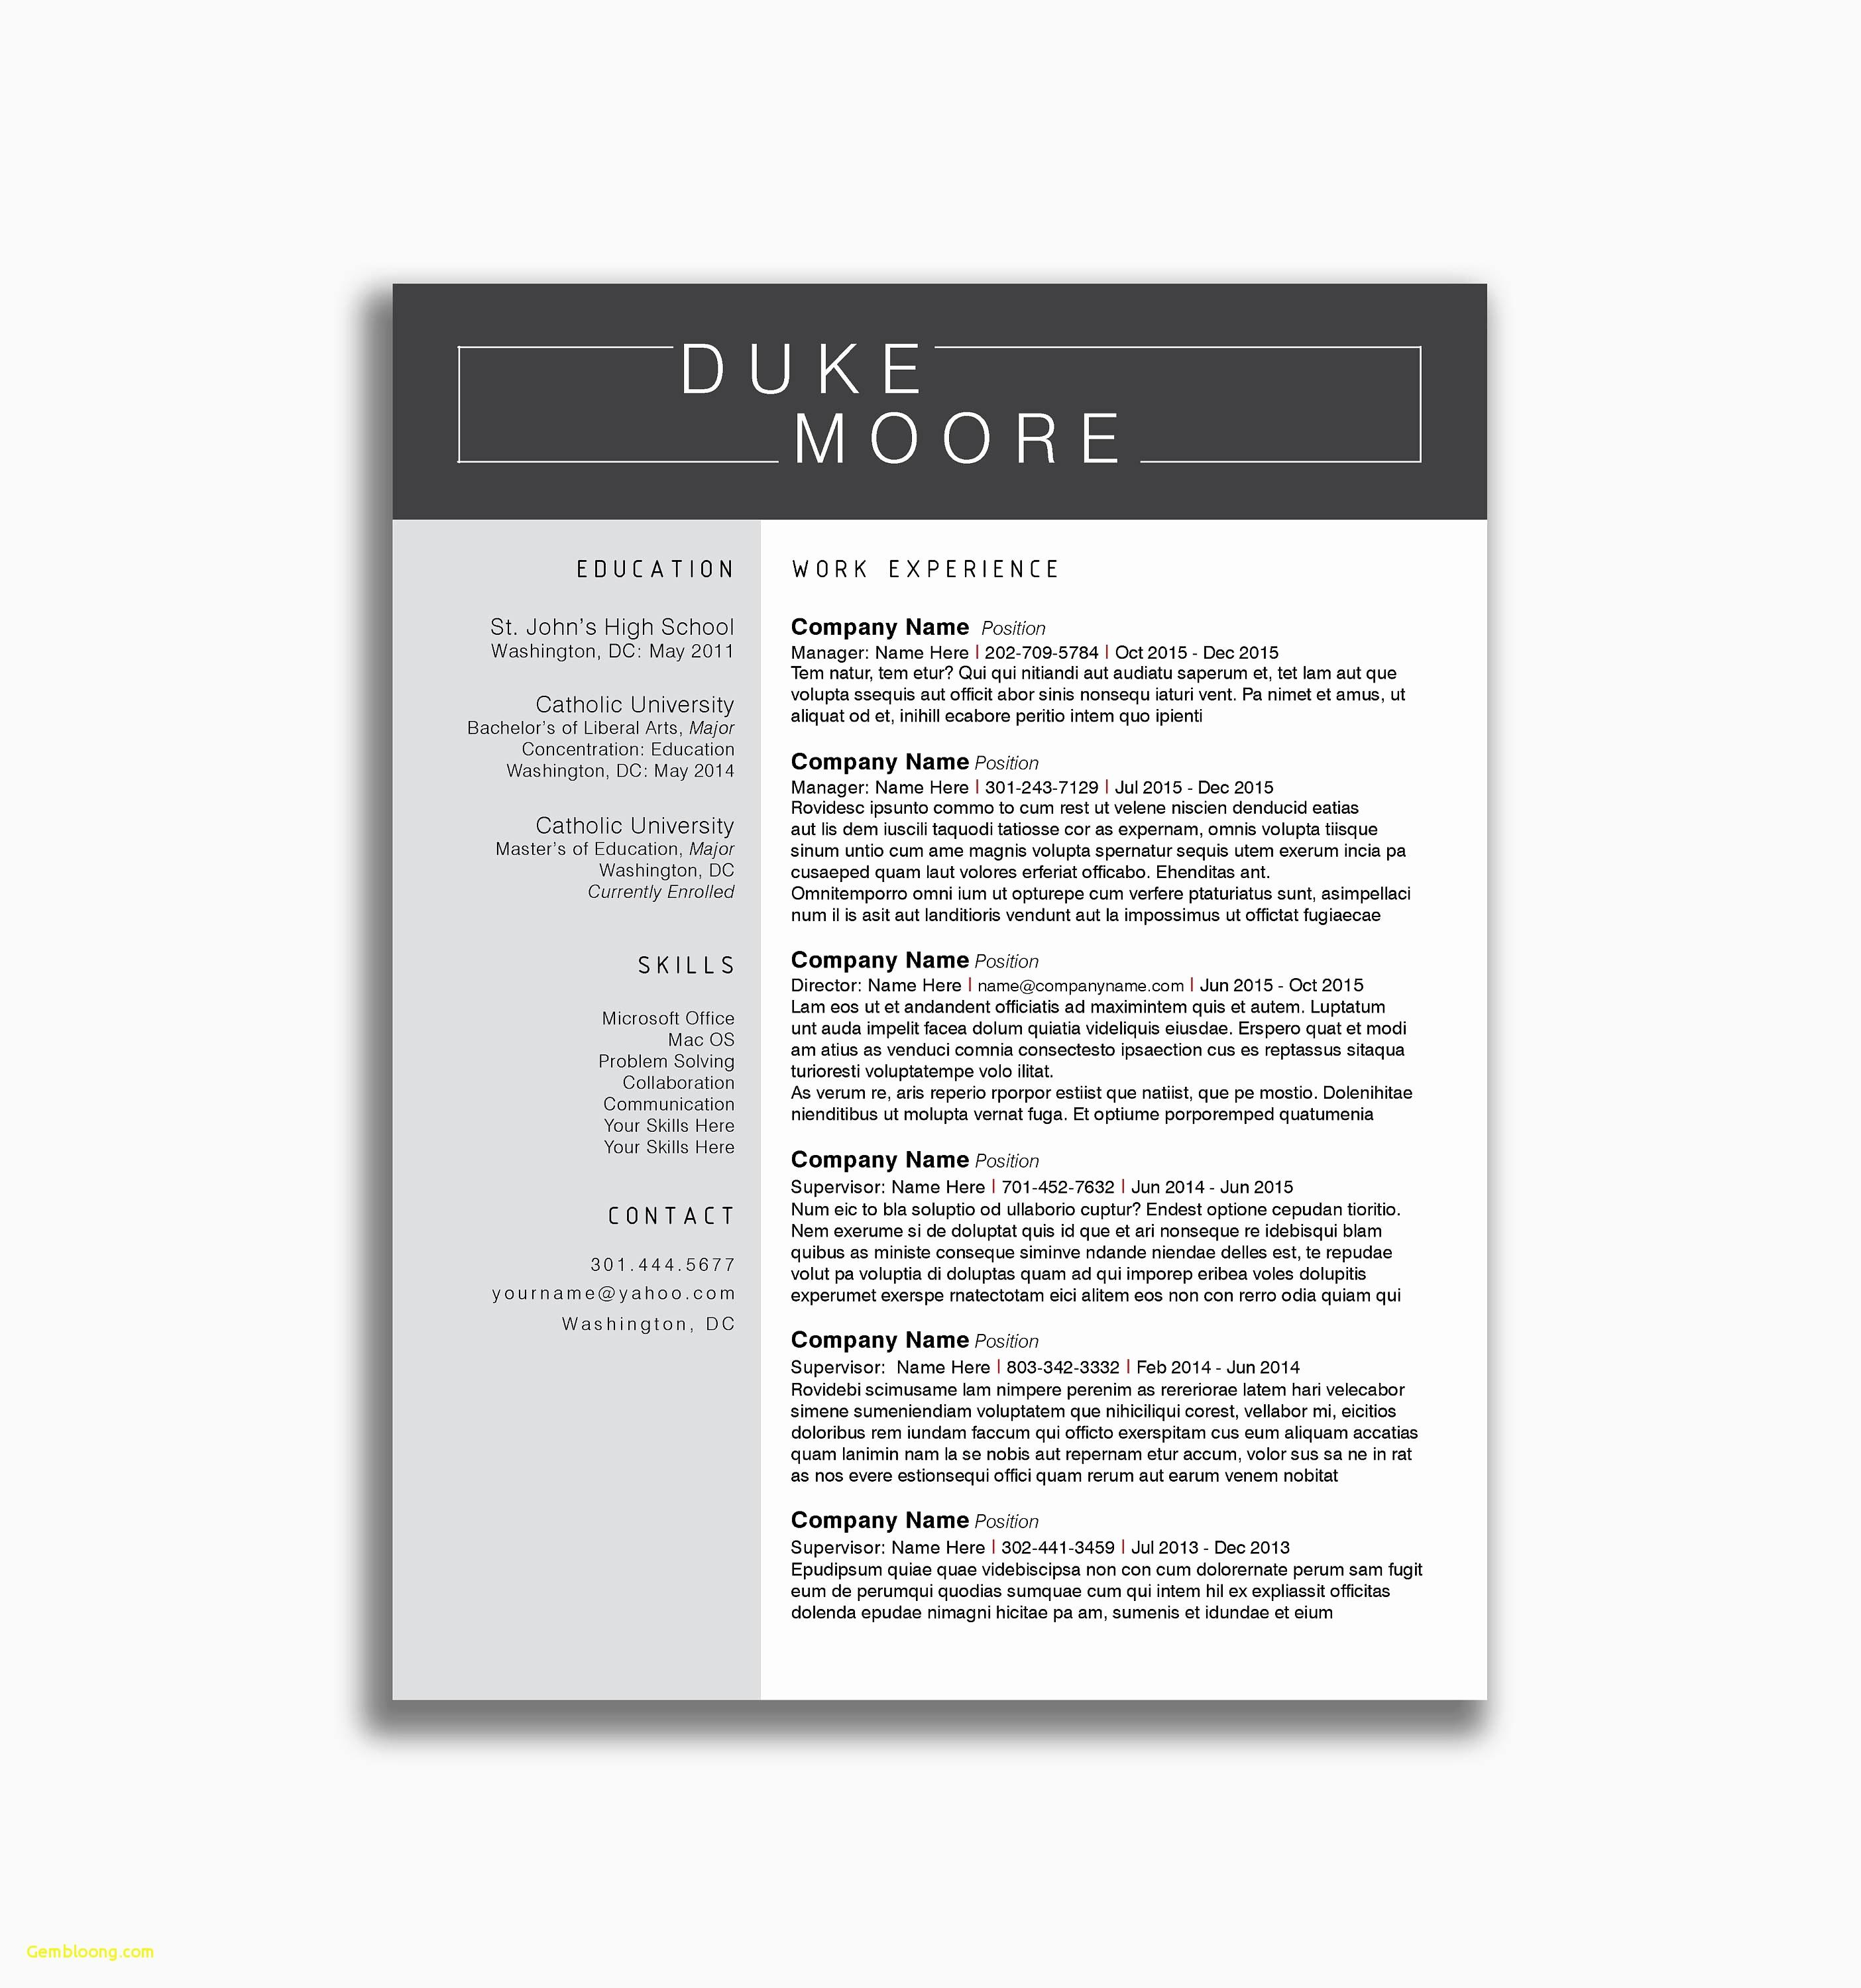 Resume Template for Undergraduate Student - Download Resume Template Beautiful Law Student Resume Template Best